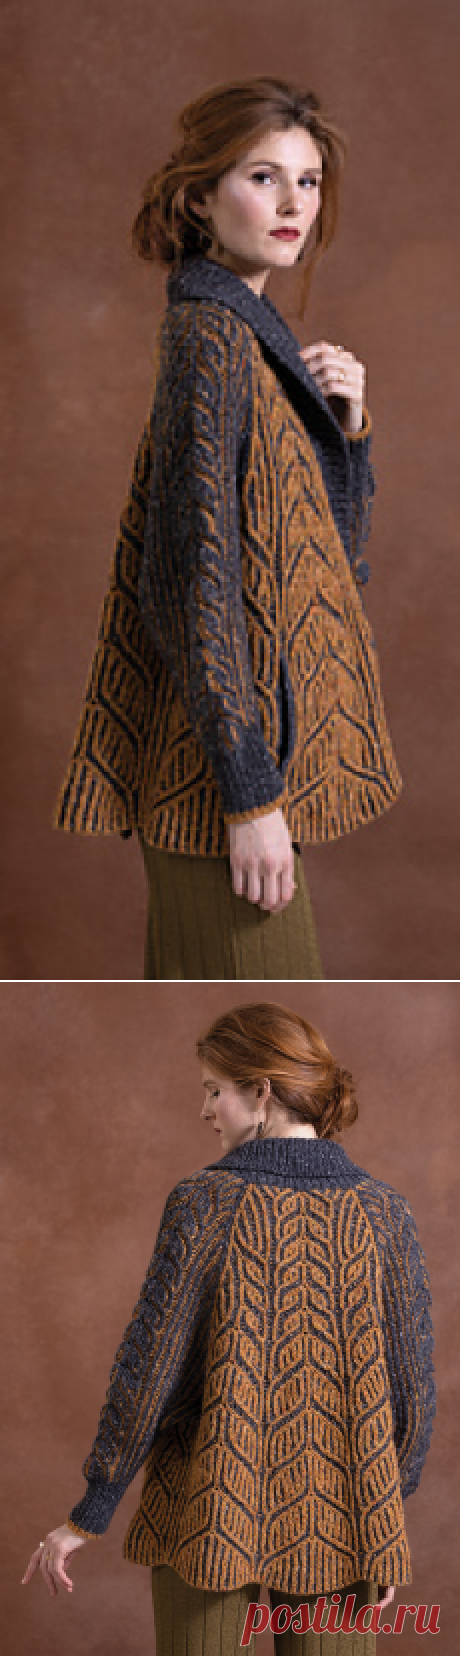 Ravelry: #18 Amber Leafy Coat pattern by Quinny Zhang